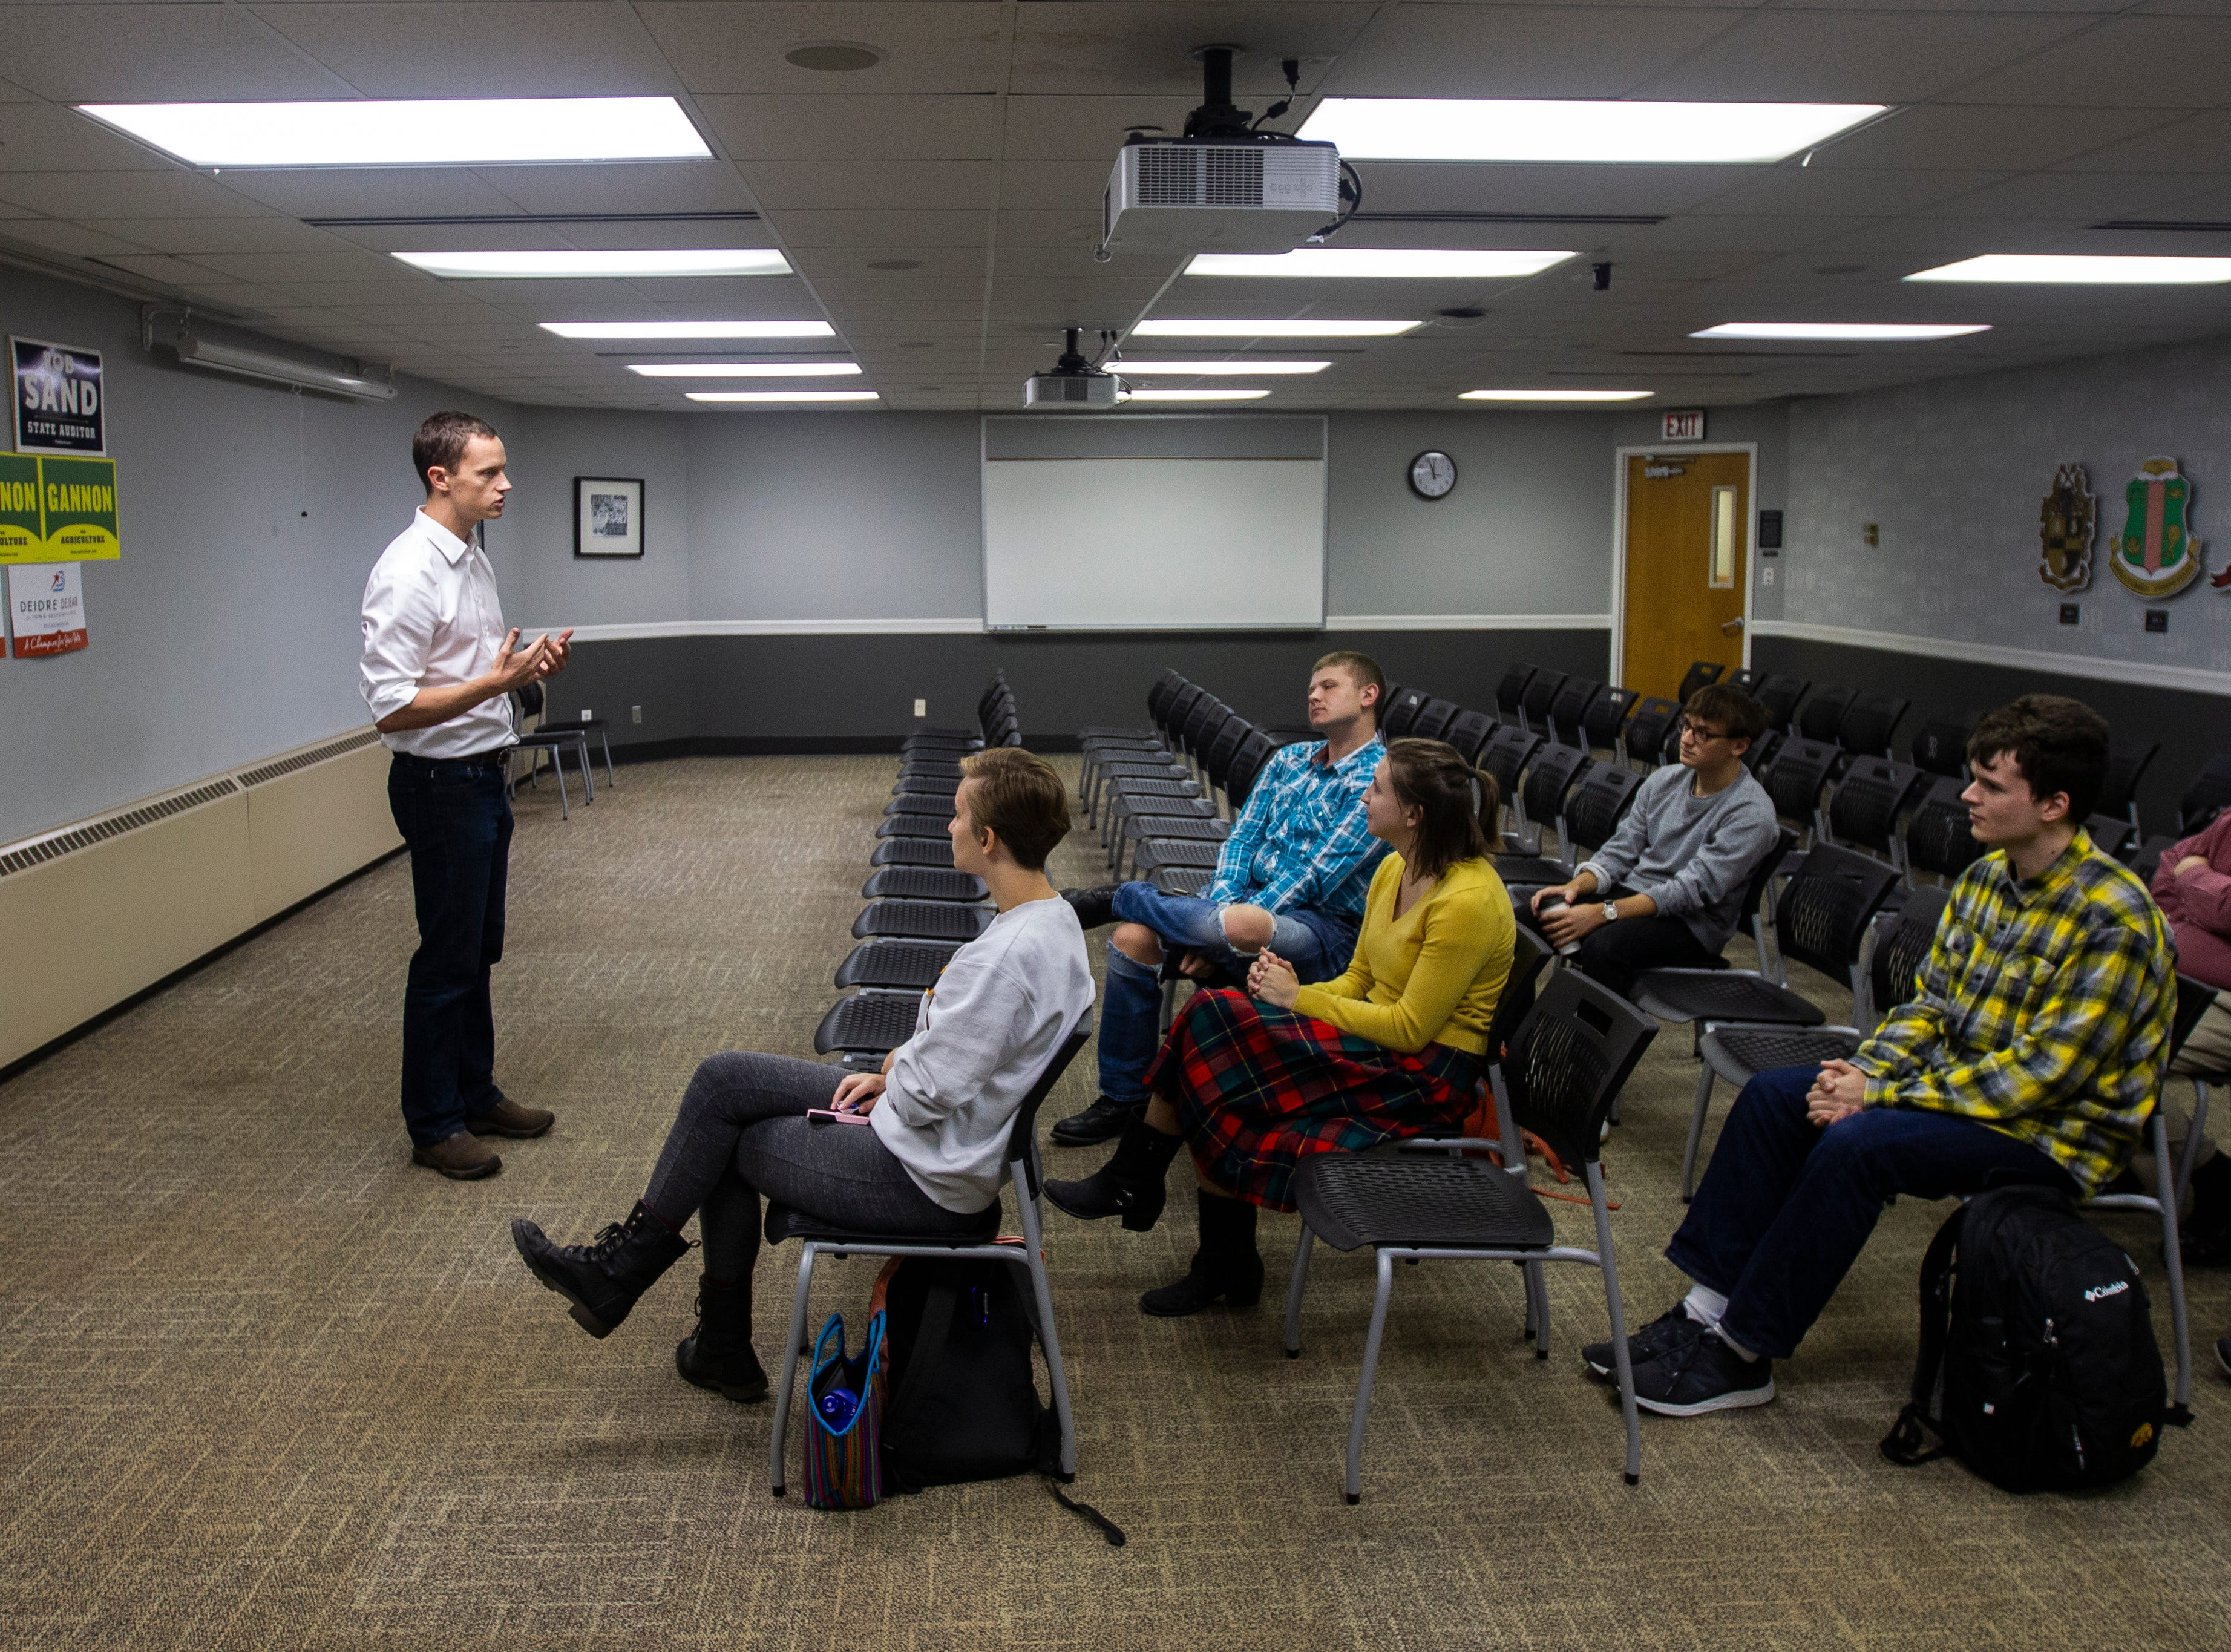 Rob Sand, Democratic candidate for Iowa state auditor, speaks during an event on Wednesday, Sept. 26, 2018, at the Iowa Memorial Union on the University of Iowa campus in Iowa City.